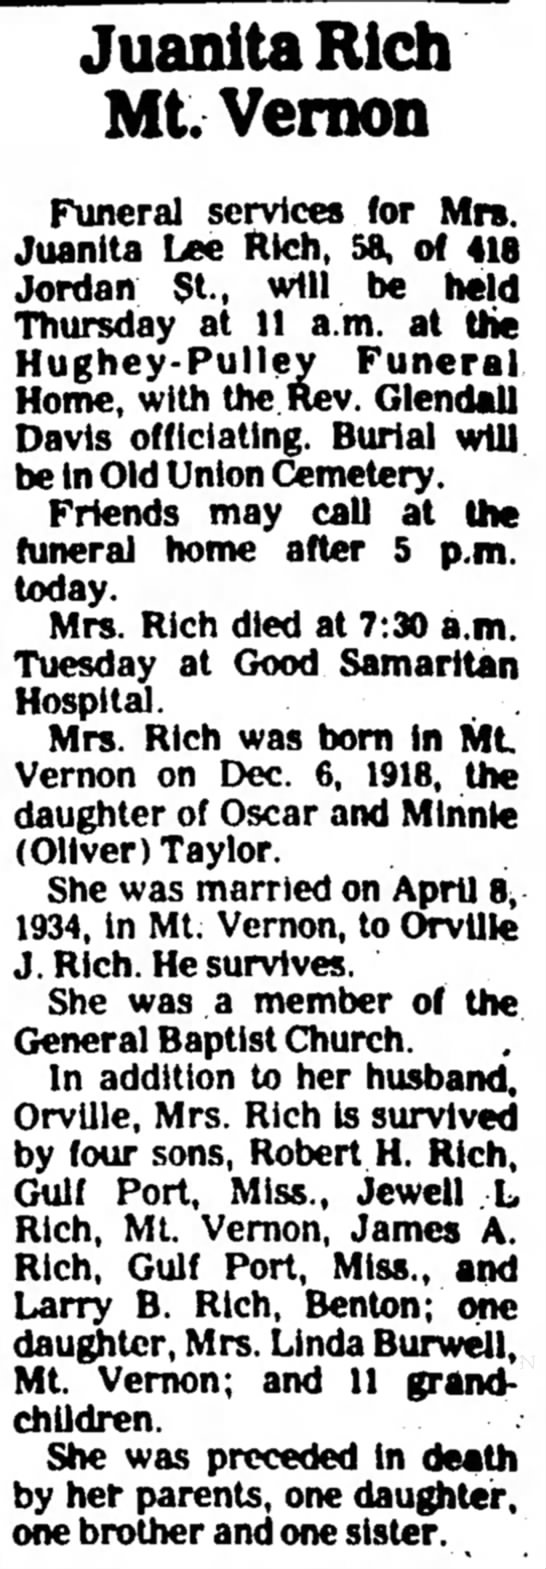 Juanita Lee (Taylor) Rich obit - 16 Mar 1977 - JuanitaRich ML Vernon Funeral services for Mrs....